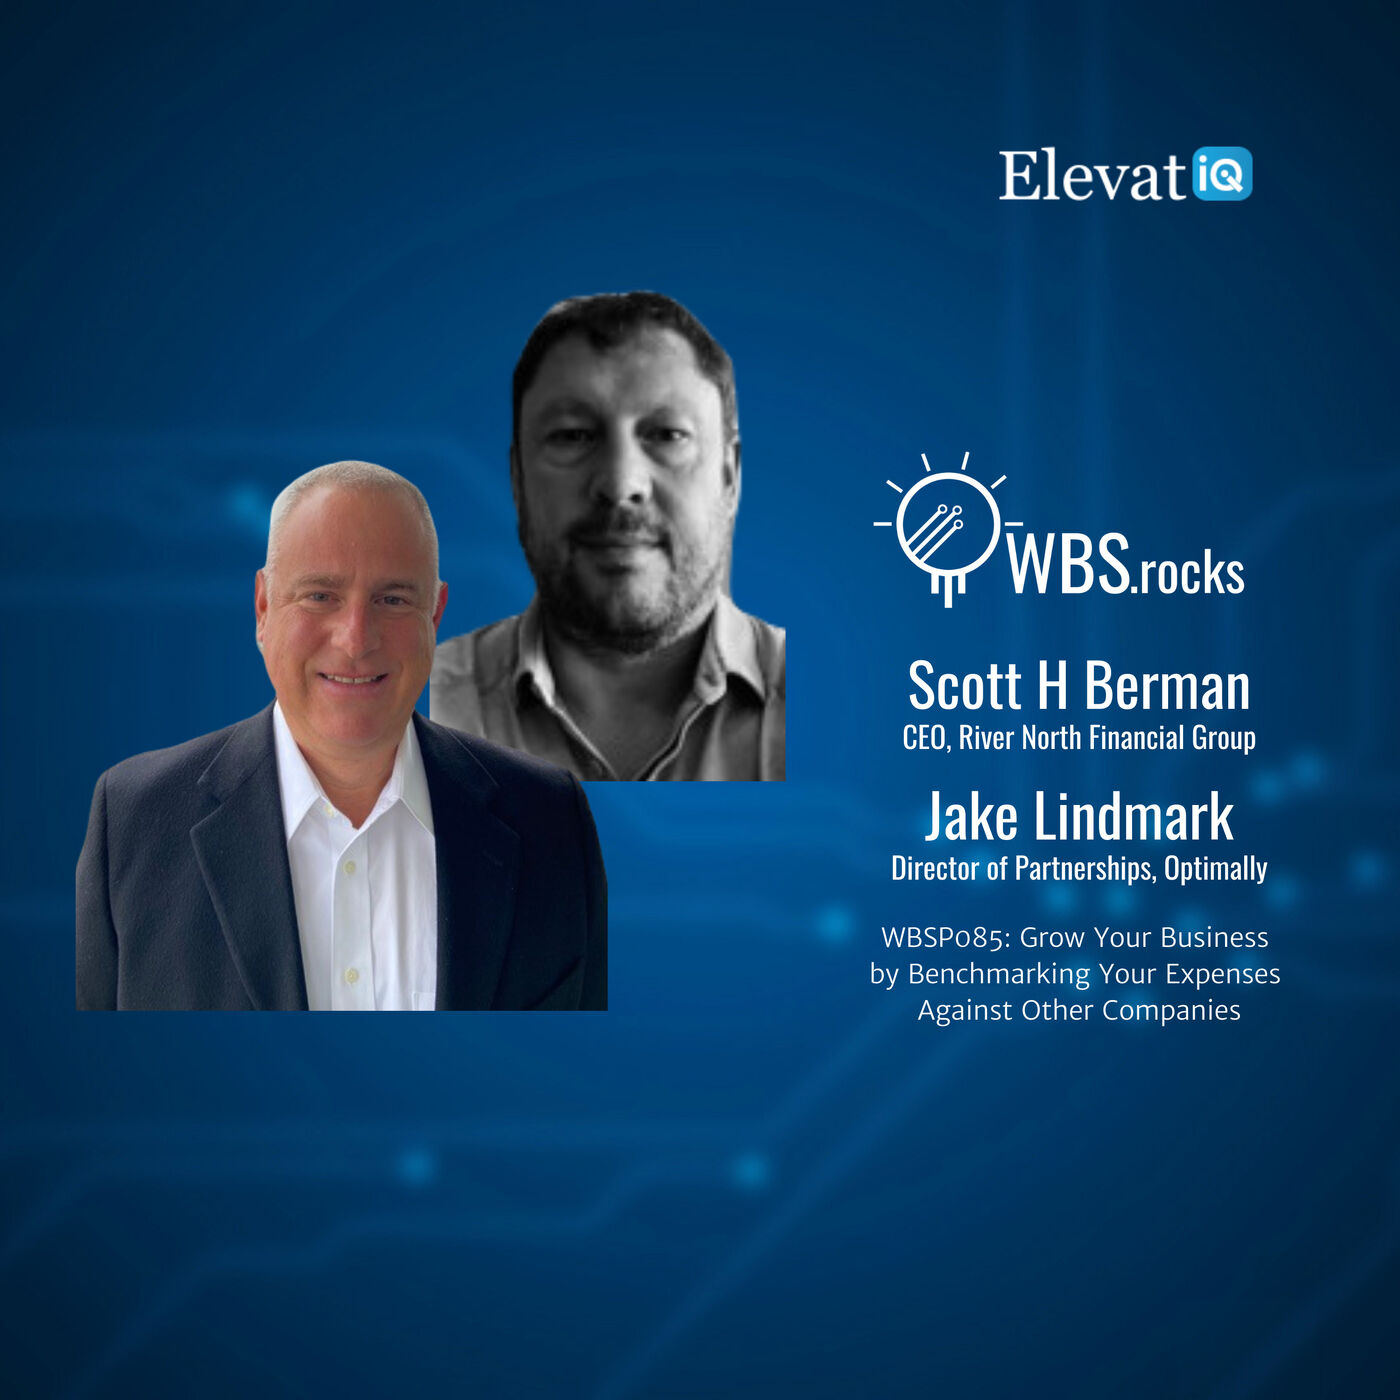 WBSP085: Grow Your Business by Benchmarking Your Expenses Against Other Companies w/ Scott Berman and Jake Lindmark